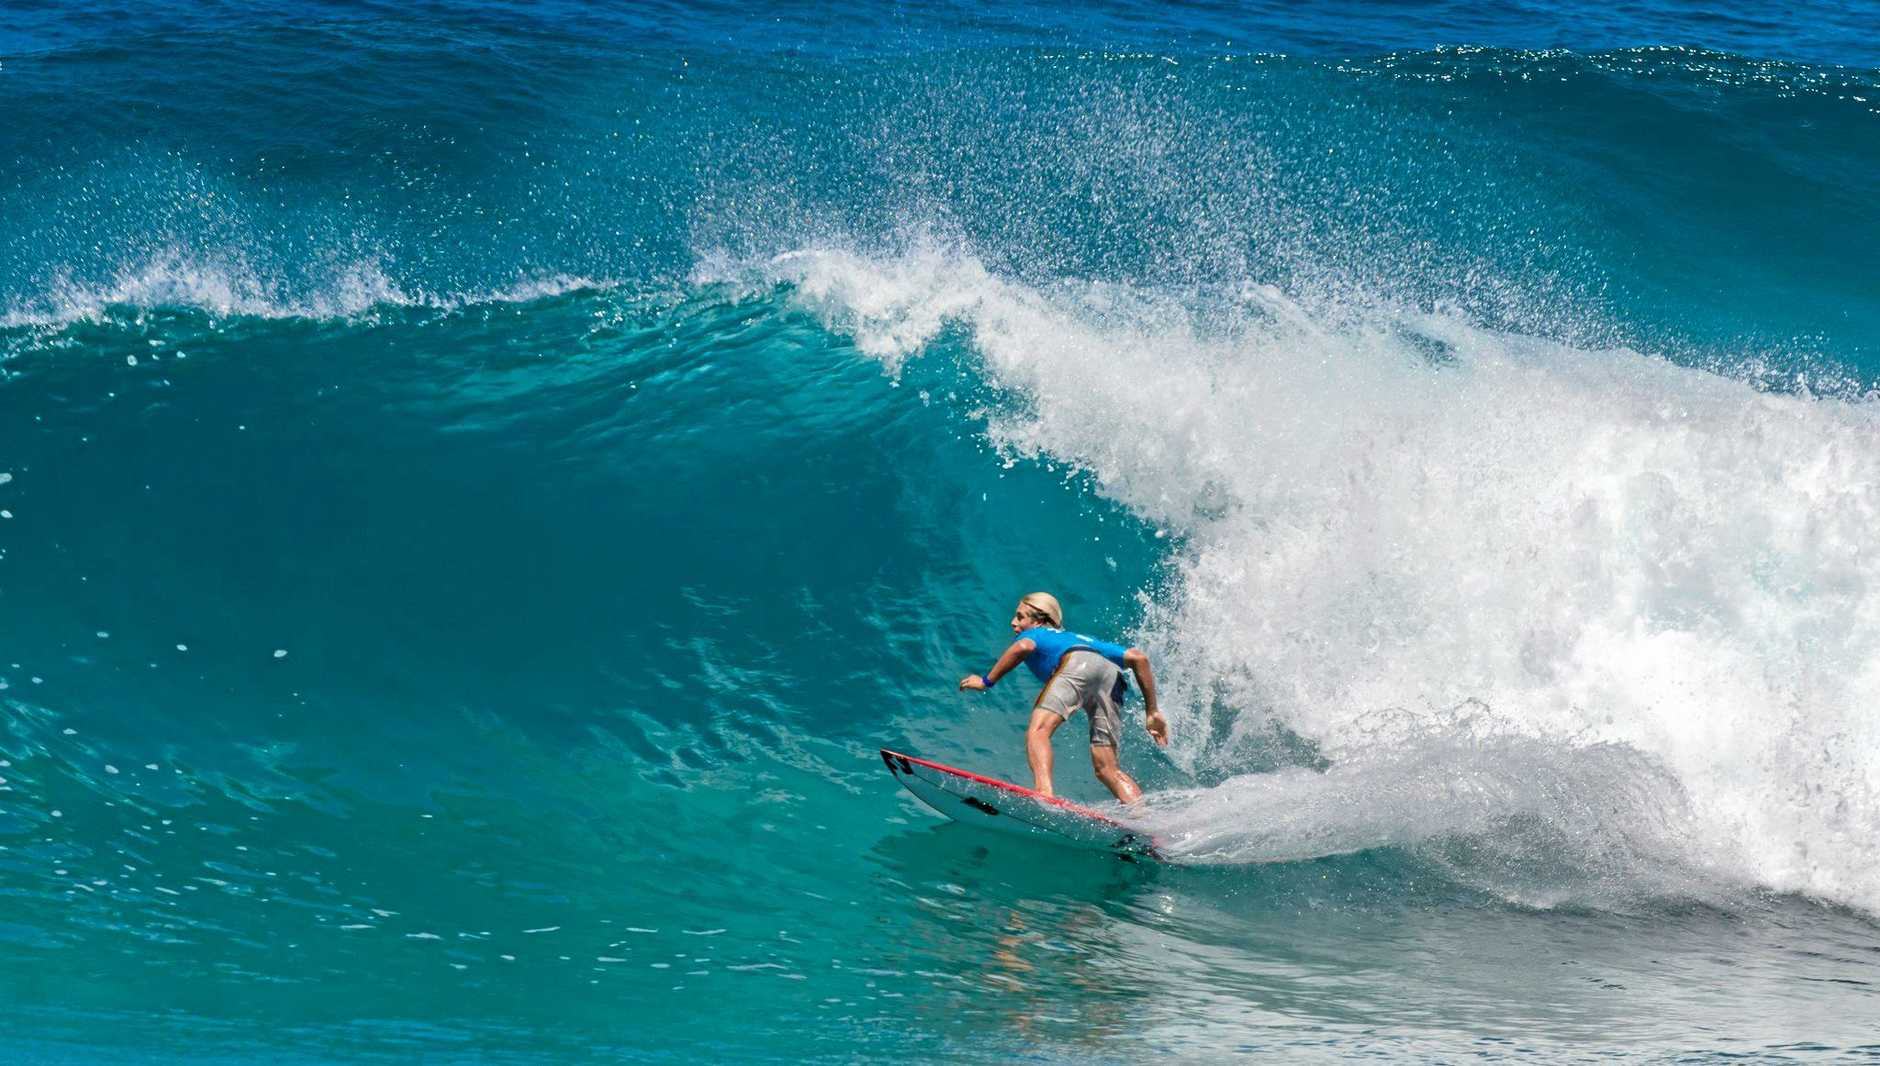 Former World Junior champion and World Tour competitor Ethan Ewing was back to his best helping his club PLB to victory at Main Beach, Point Lookout, North Stradbroke Island.